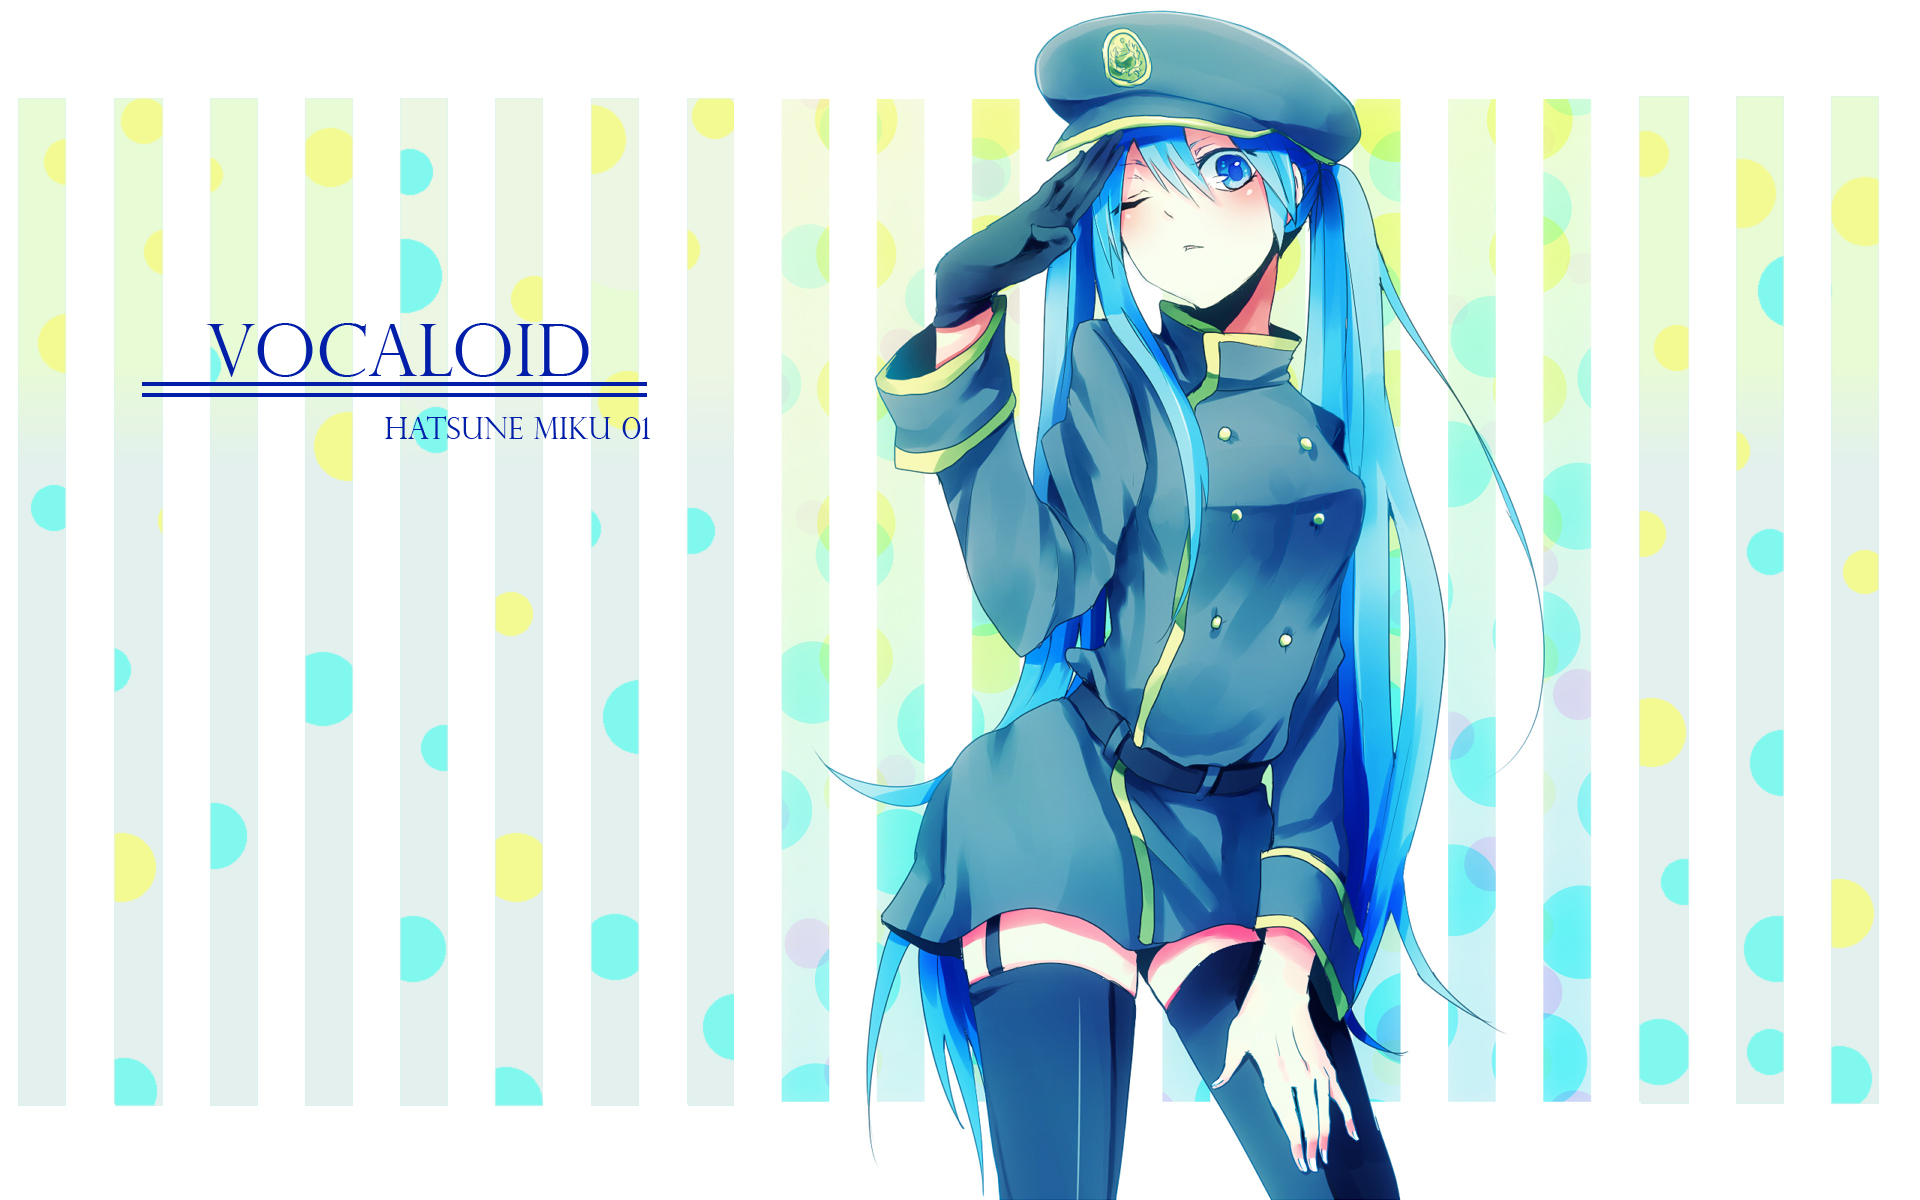 Anime - Vocaloid  - 1920x1080 - Hatsune - Miku - Salute - Uniform - Women  Wallpaper